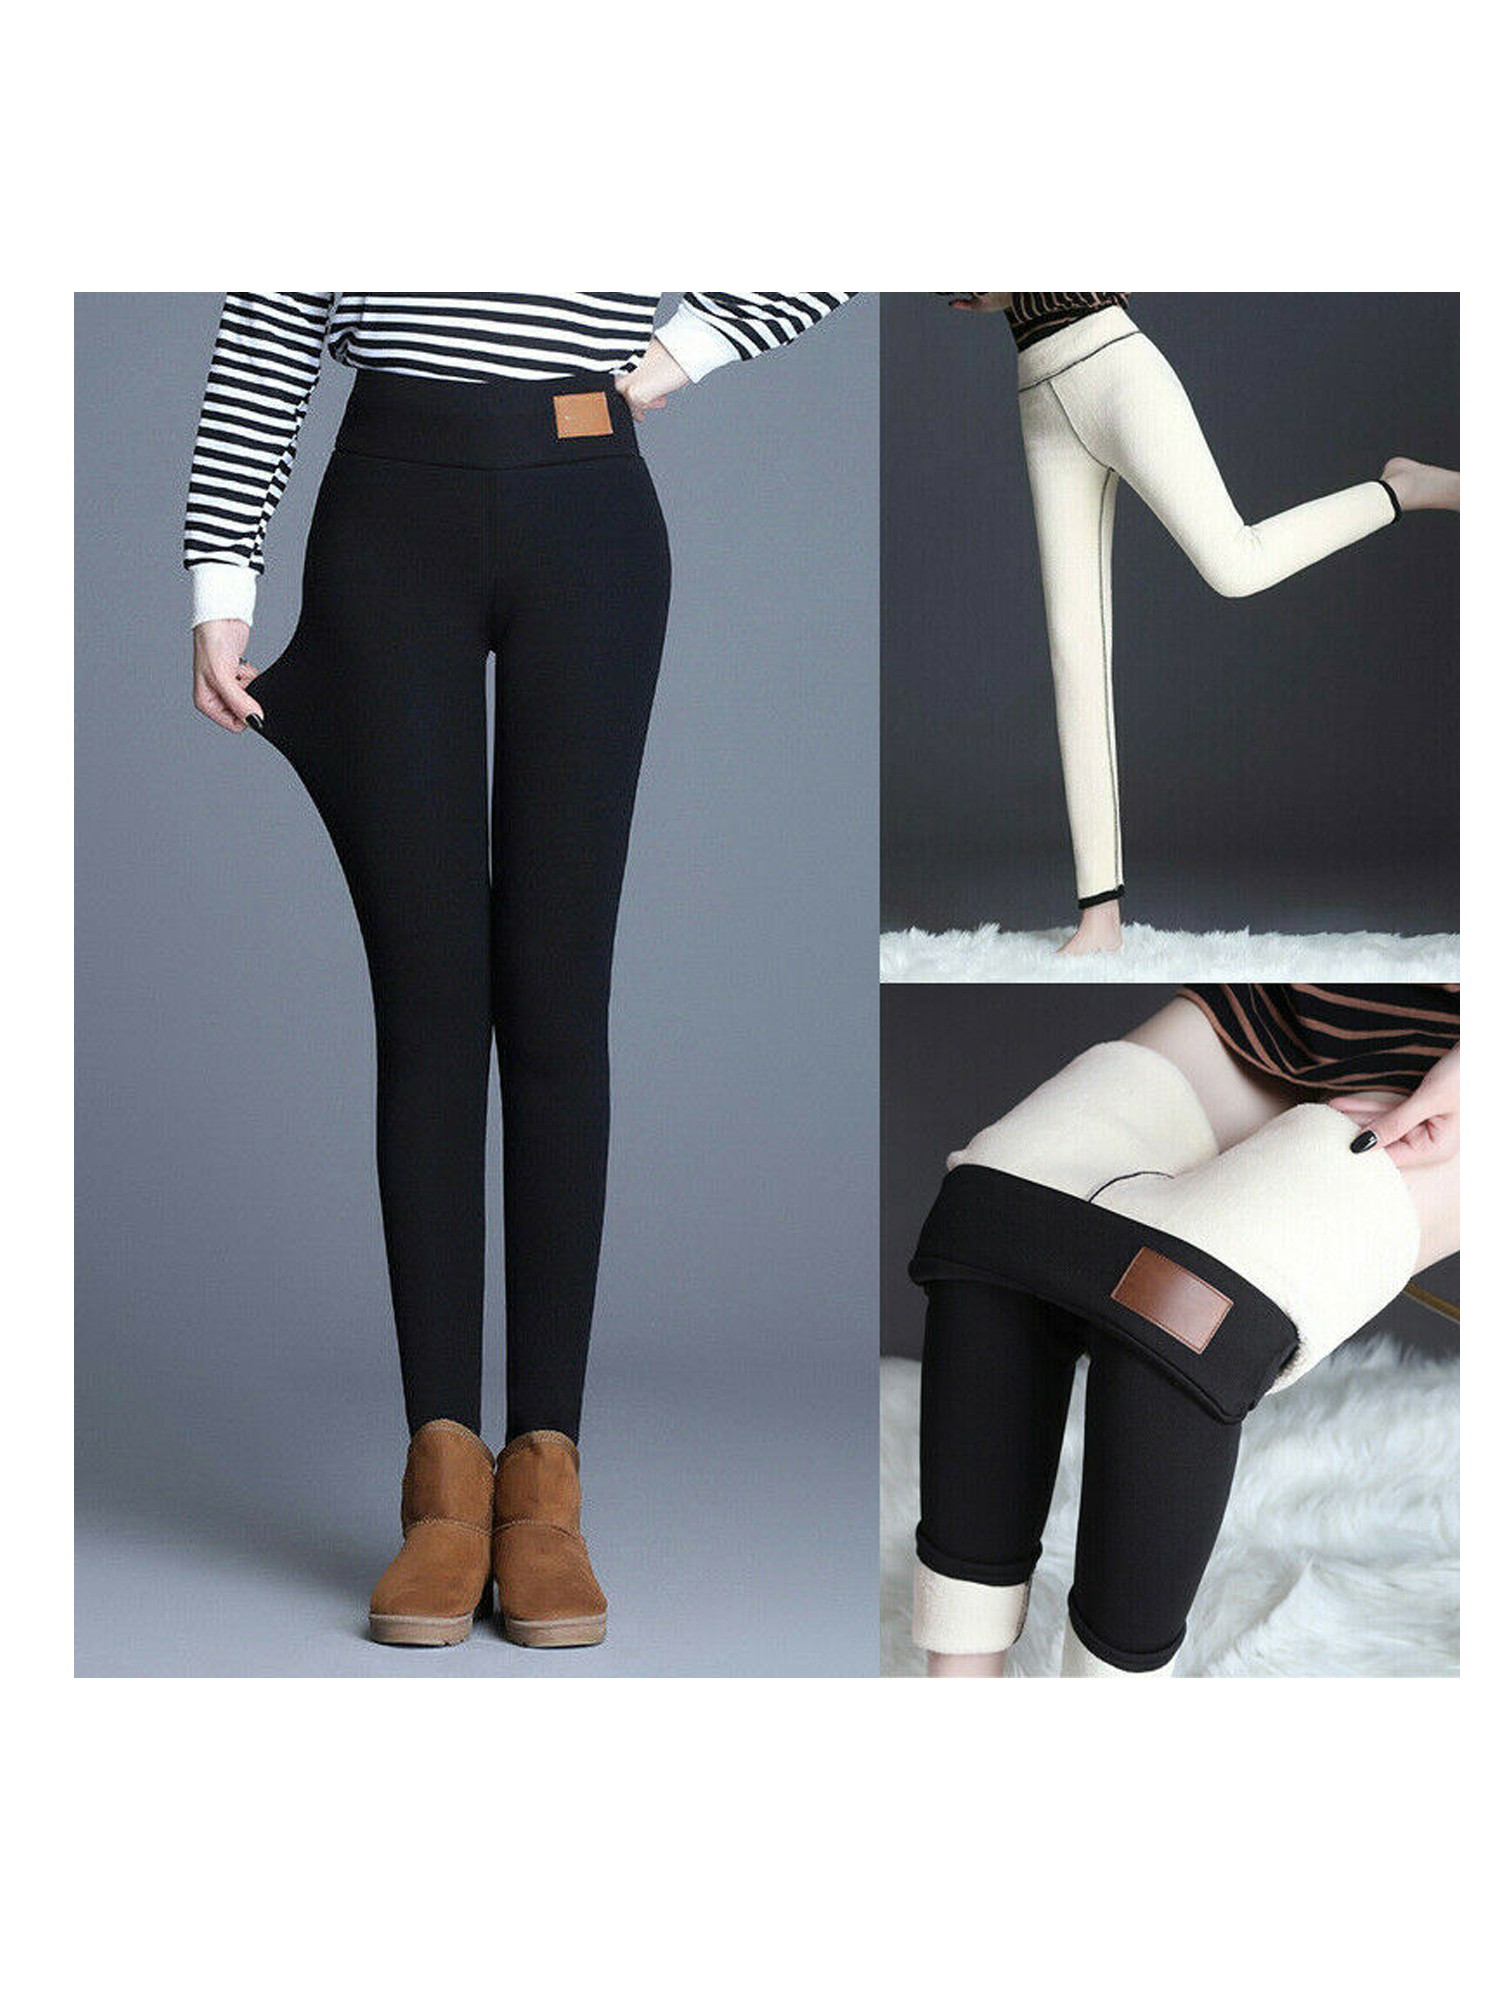 Women/'s Winter Thick Warm Fleece Lined Thermal Stretchy Skinny Leggings Pants